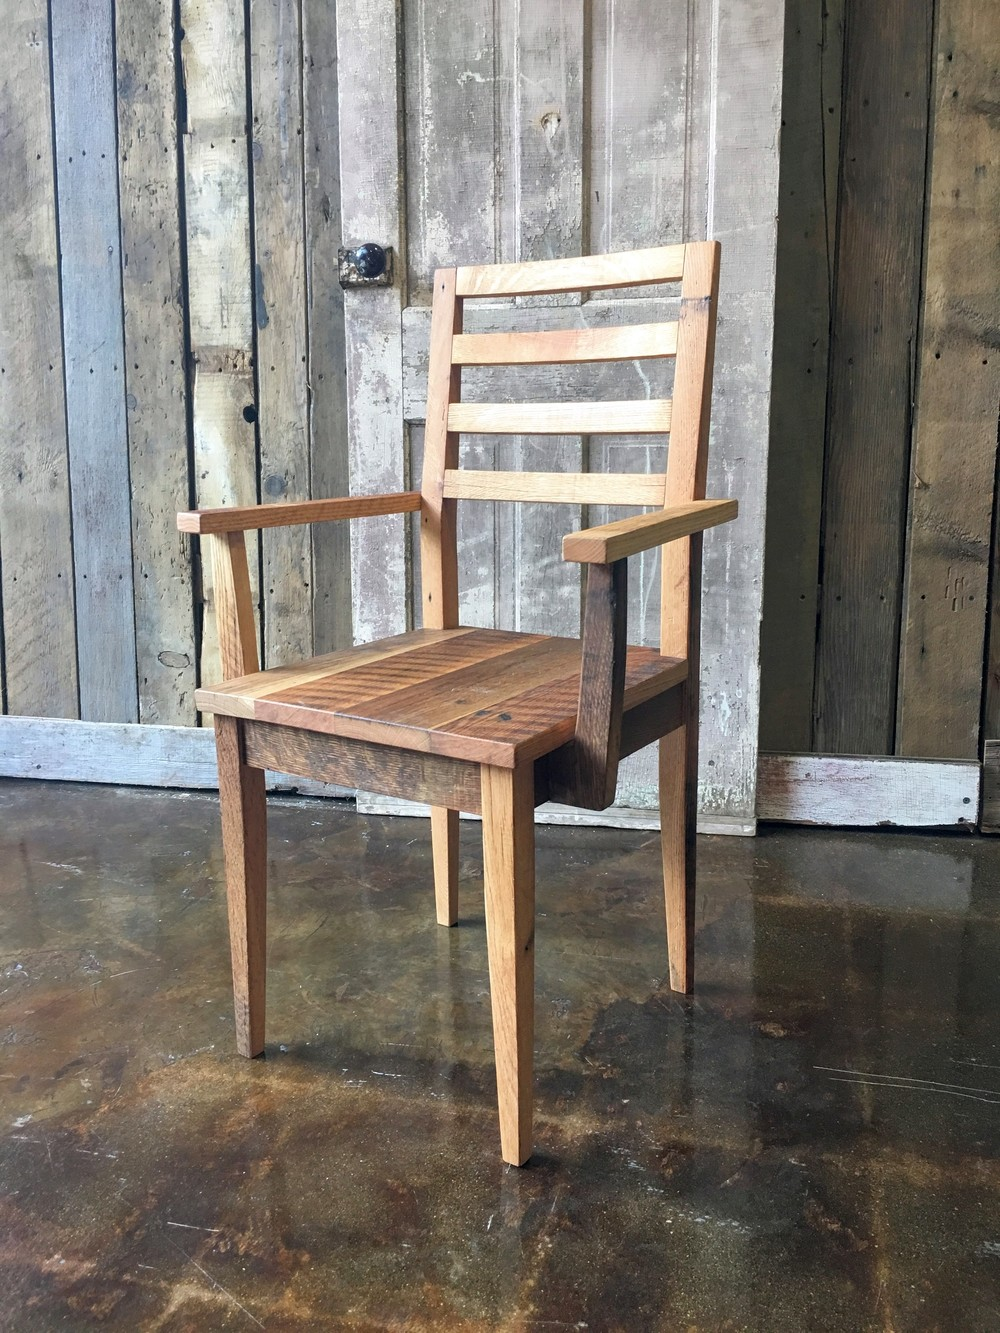 Farmhouse Dining Chair Made From Reclaimed Wood With Arm Rests. IMG_1059.jpg & Farmhouse Dining Chair Made From Reclaimed Wood With Arm Rests ...